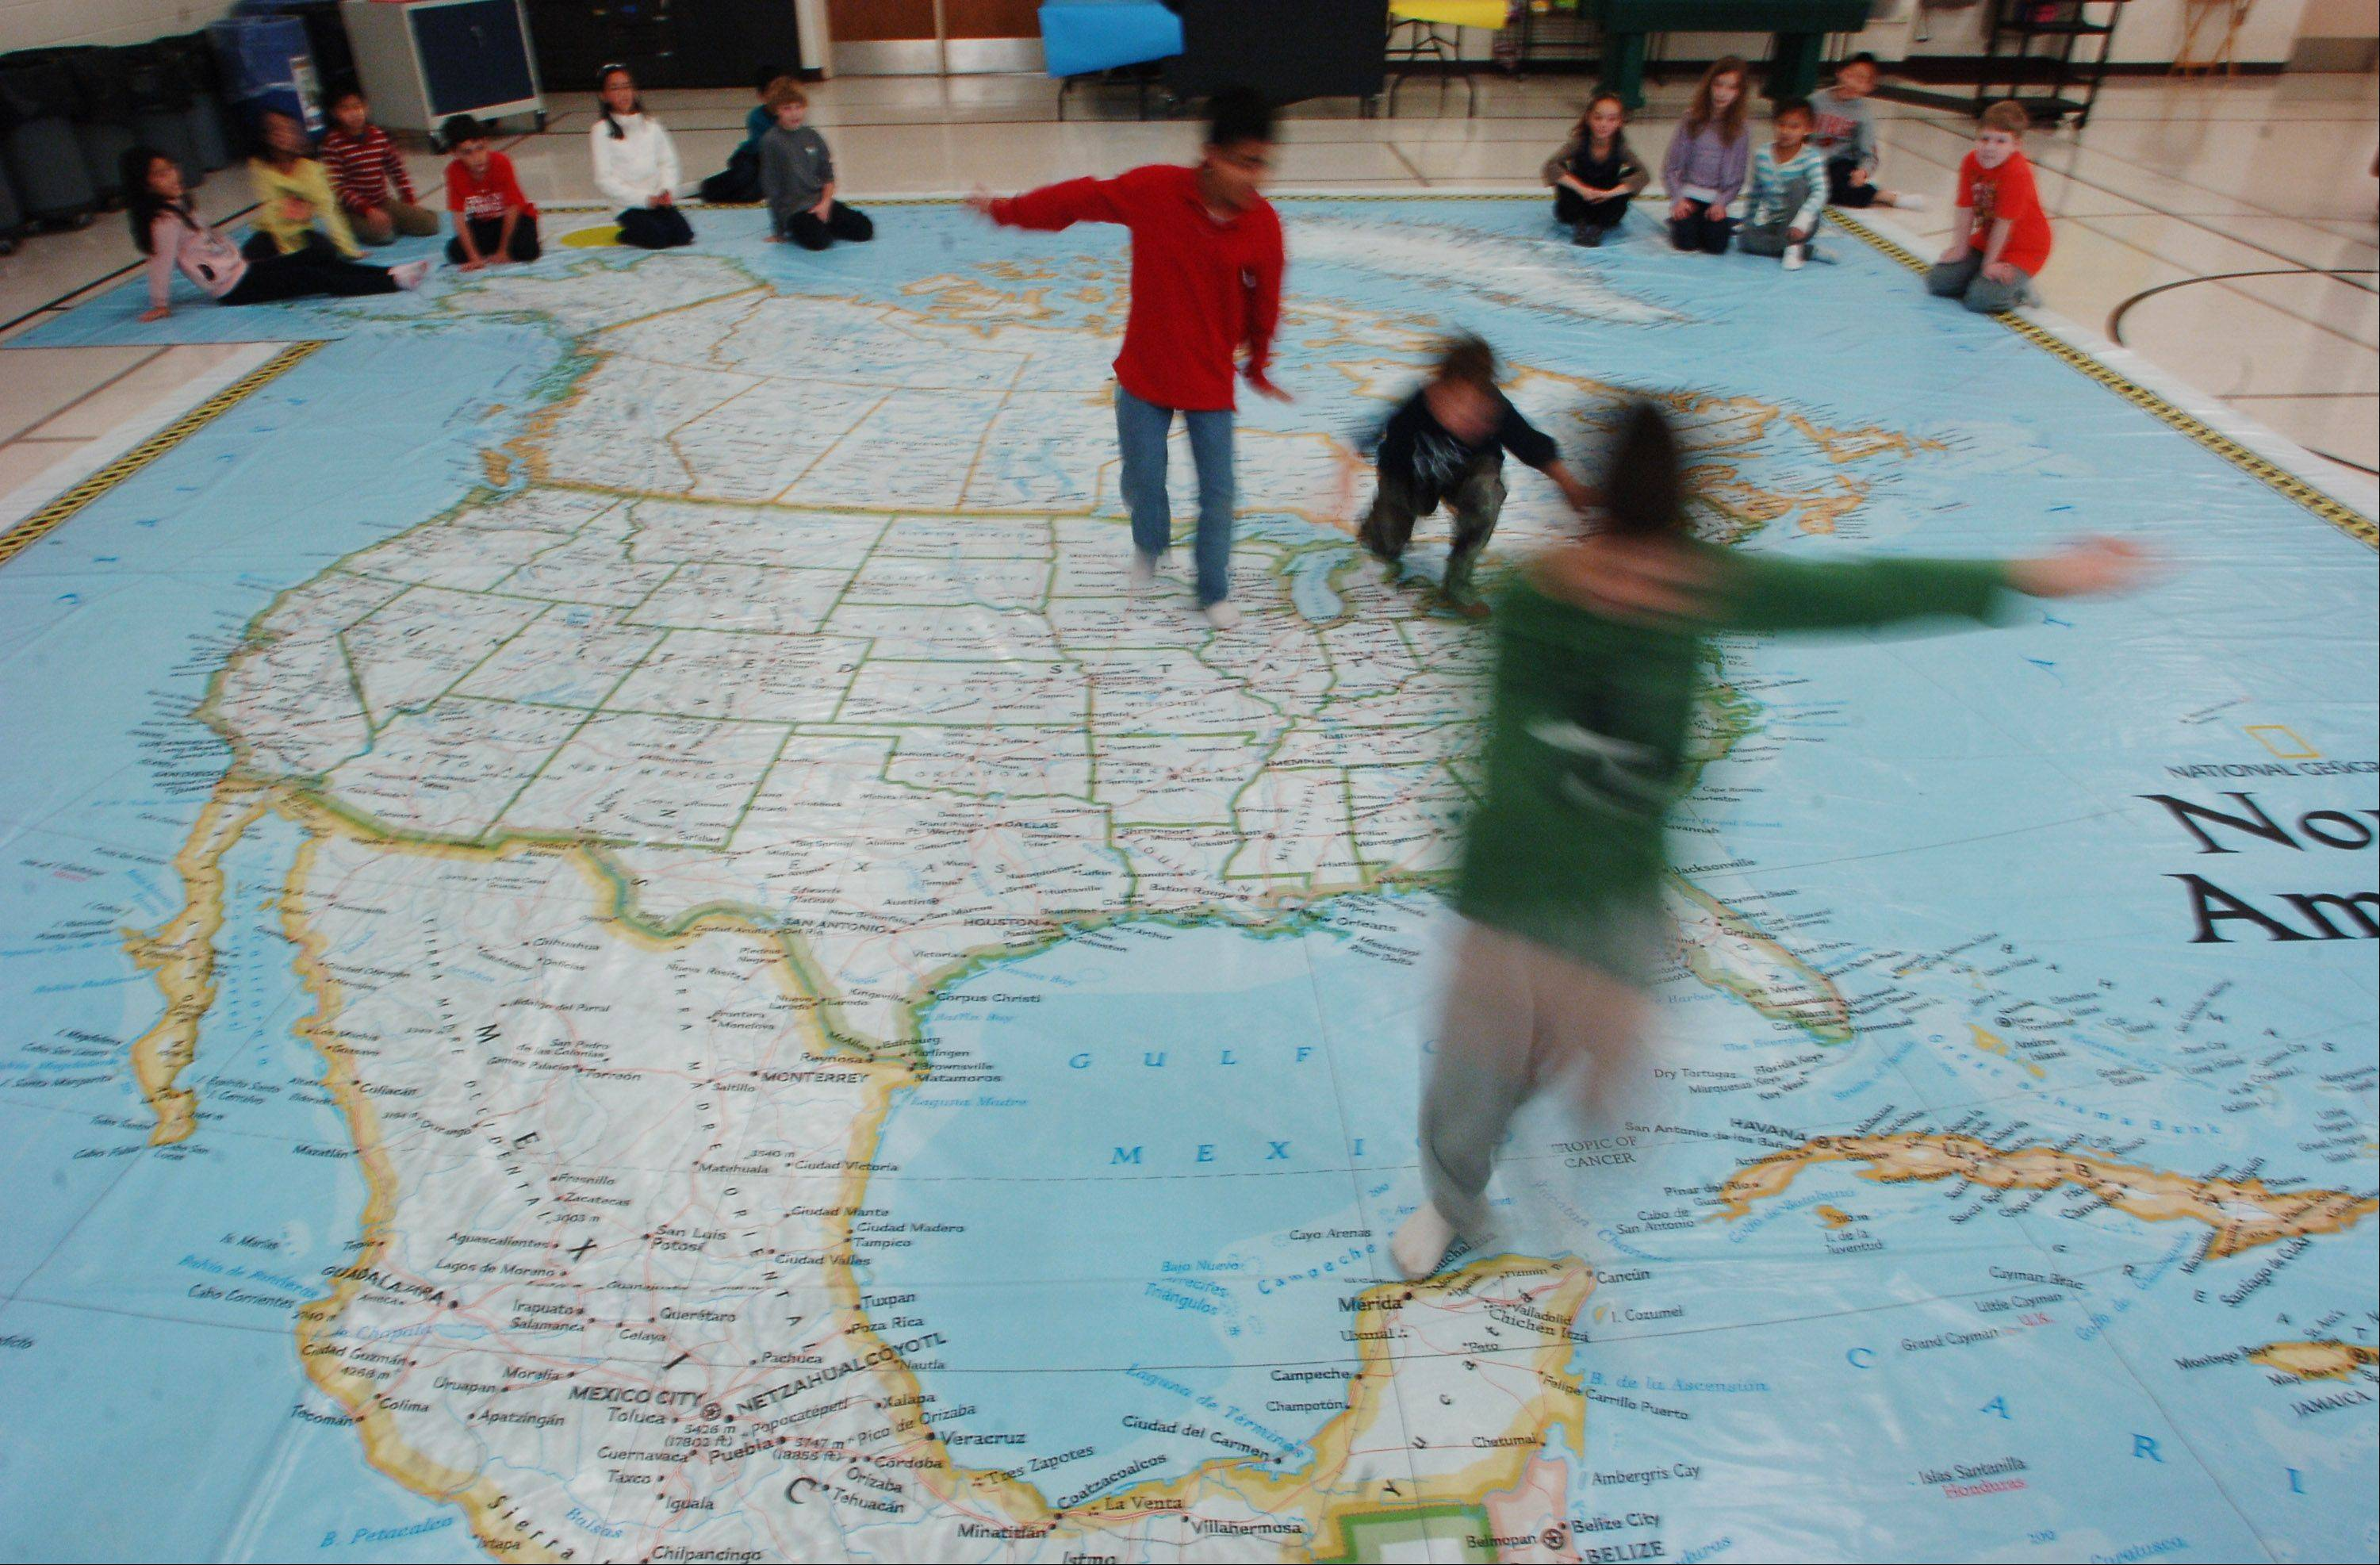 Fourth grade students at Half Day School in Lincolnshire find locations on a traveling National Geographic Giant Map of North America during a round of Simon Says Thursday. Third and fourth grade students have been using the map, which also comes with accessories, games, and books that assist the students in studying.